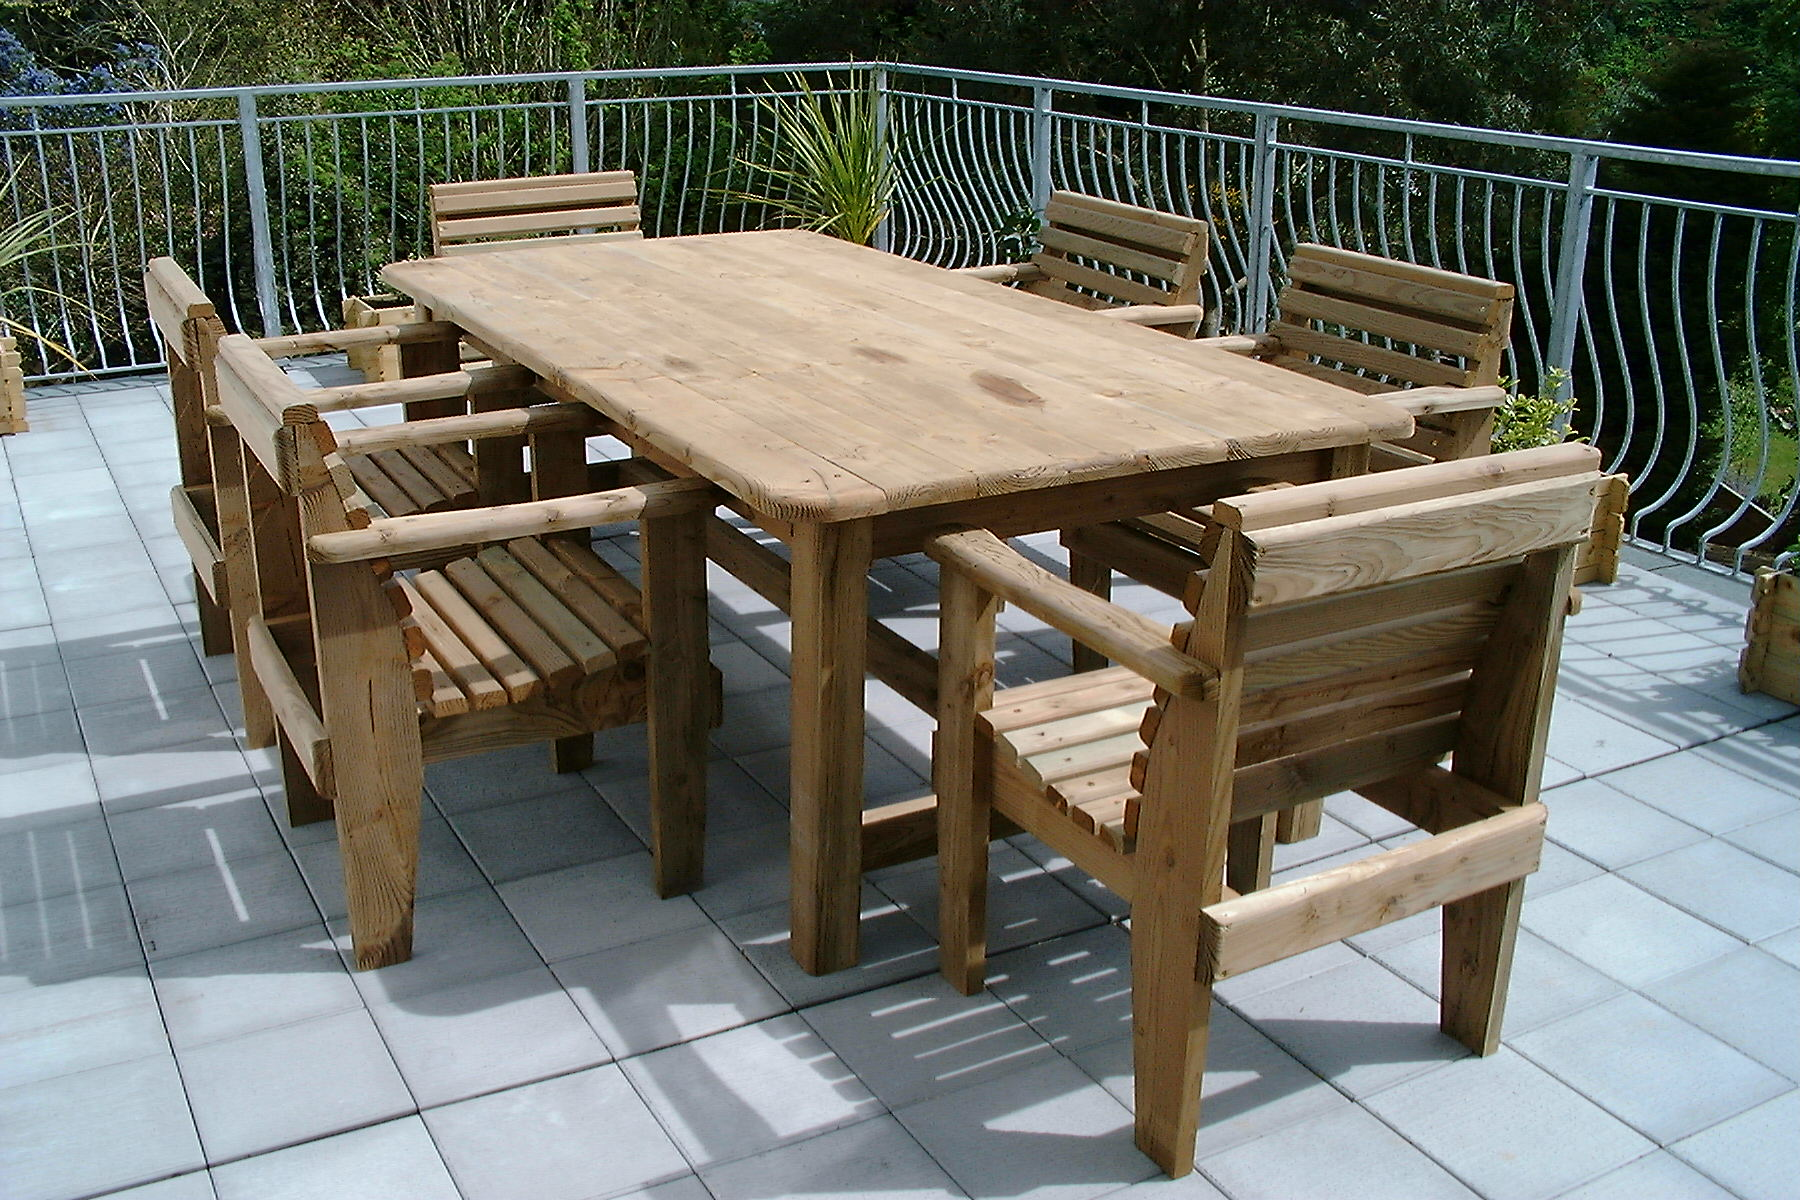 Garden furniture - Garden furniture table and chairs ...